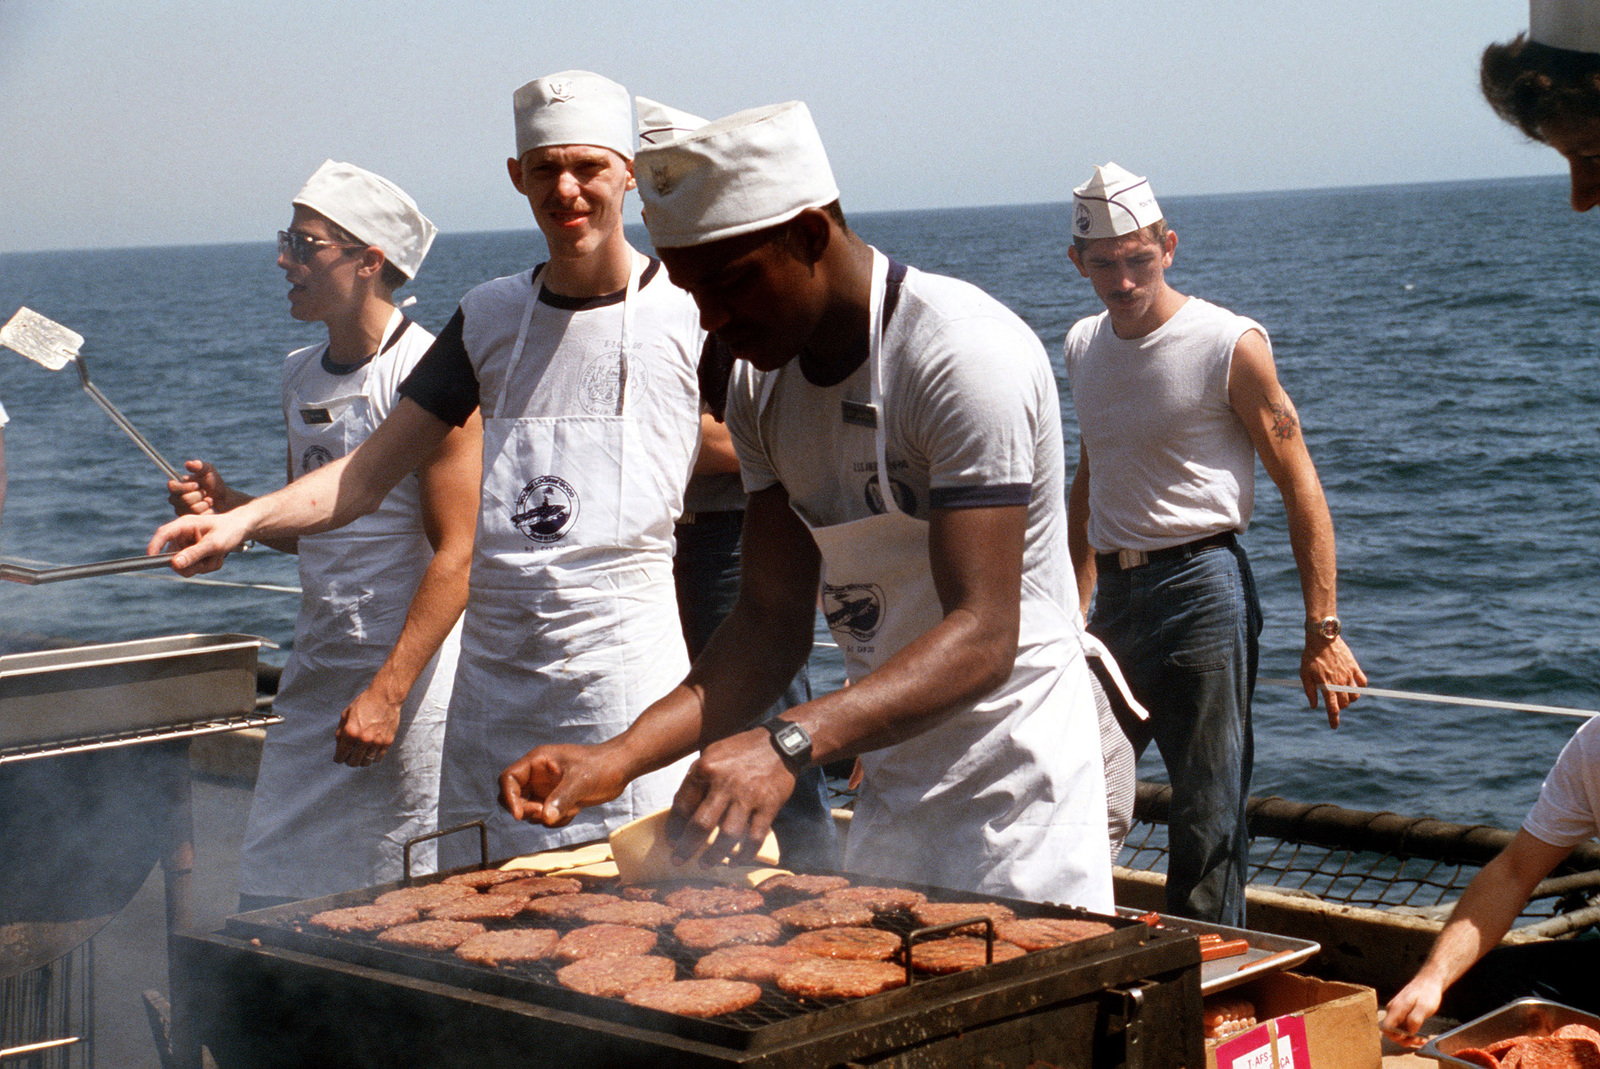 mess-management-specialist-prepare-food-for-a-picnic-aboard-the-aircraft-carrier-1a93b2-1600.jpg